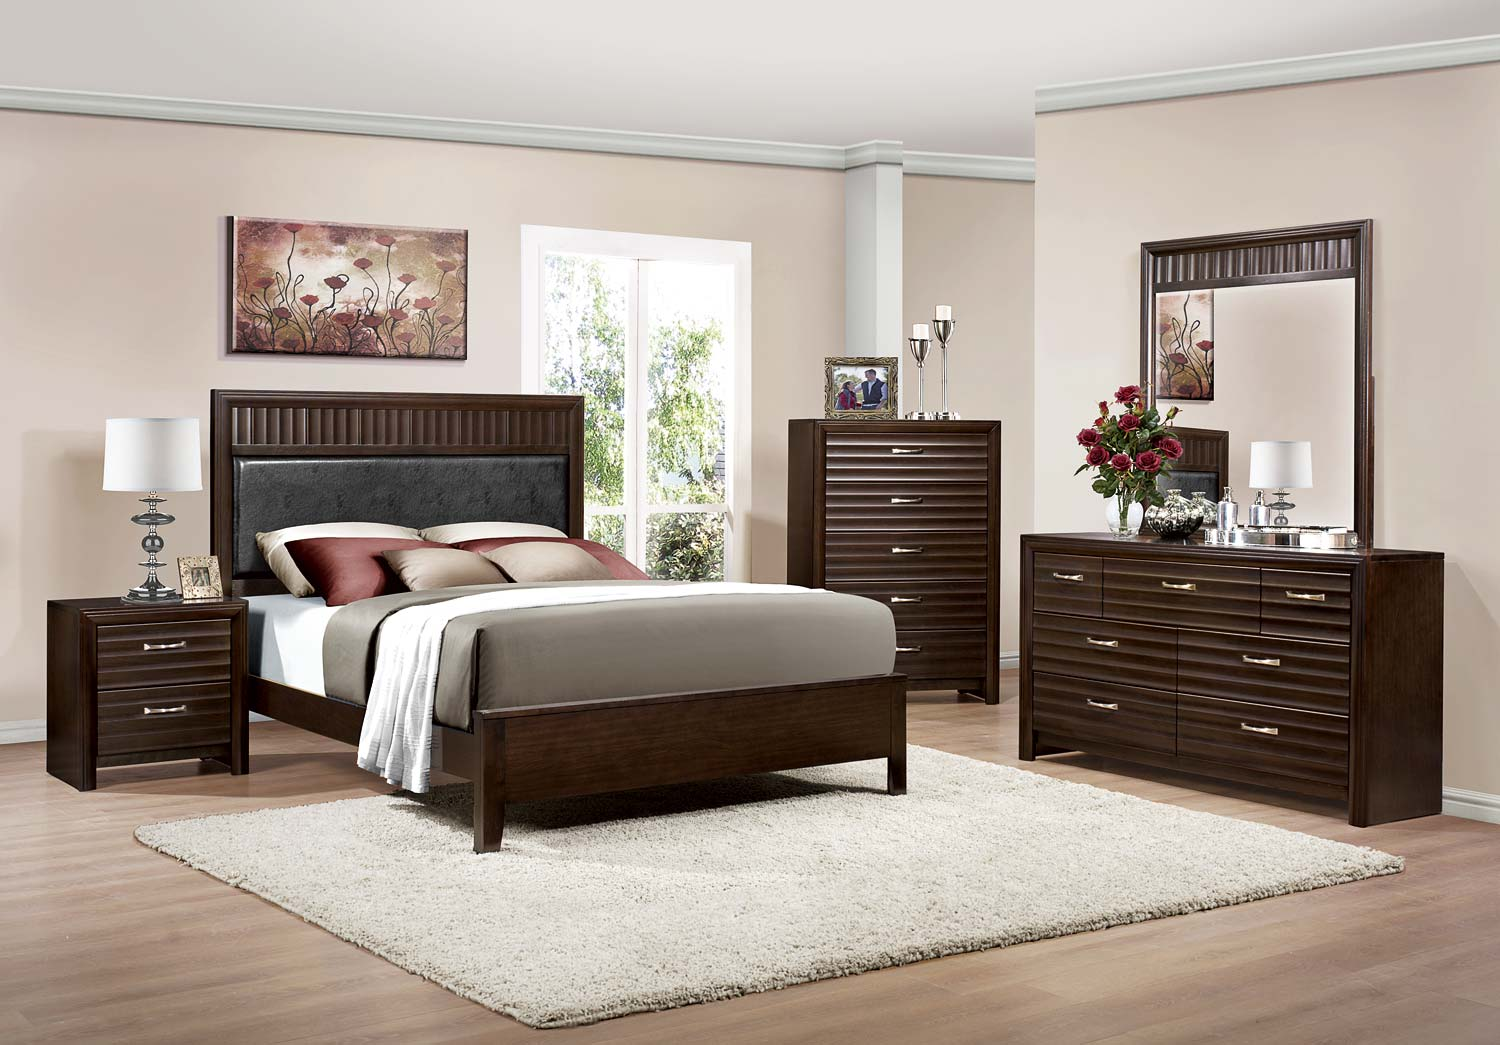 Bedroom Sets Espresso homelegance hilton bedroom set - espresso b2216-bed-set